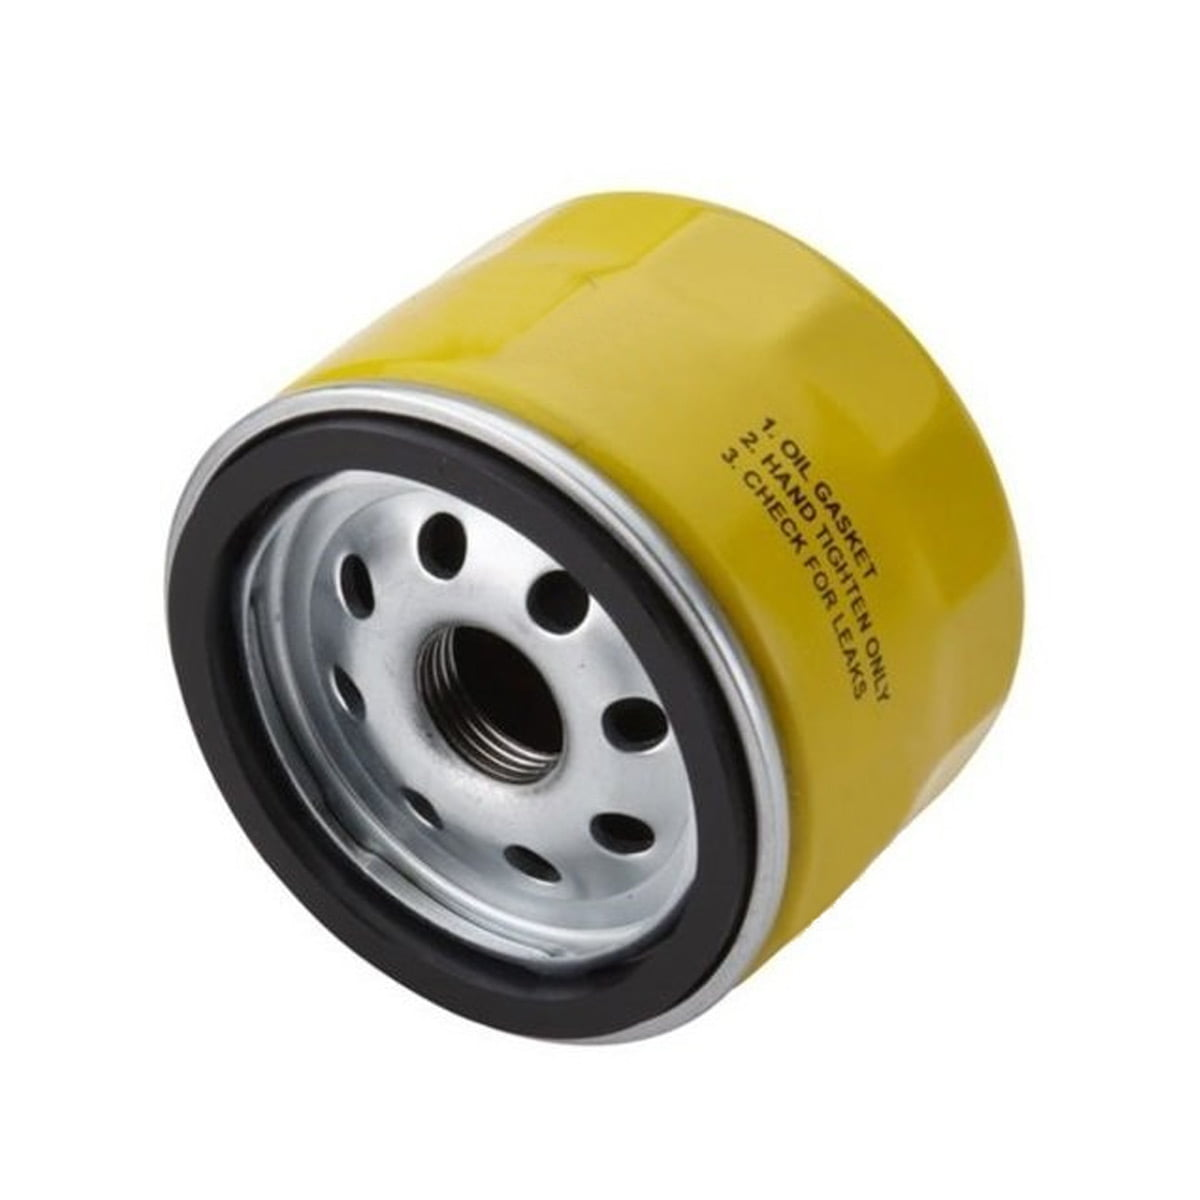 Oil Filter | Winparts.co.uk - Oil filters